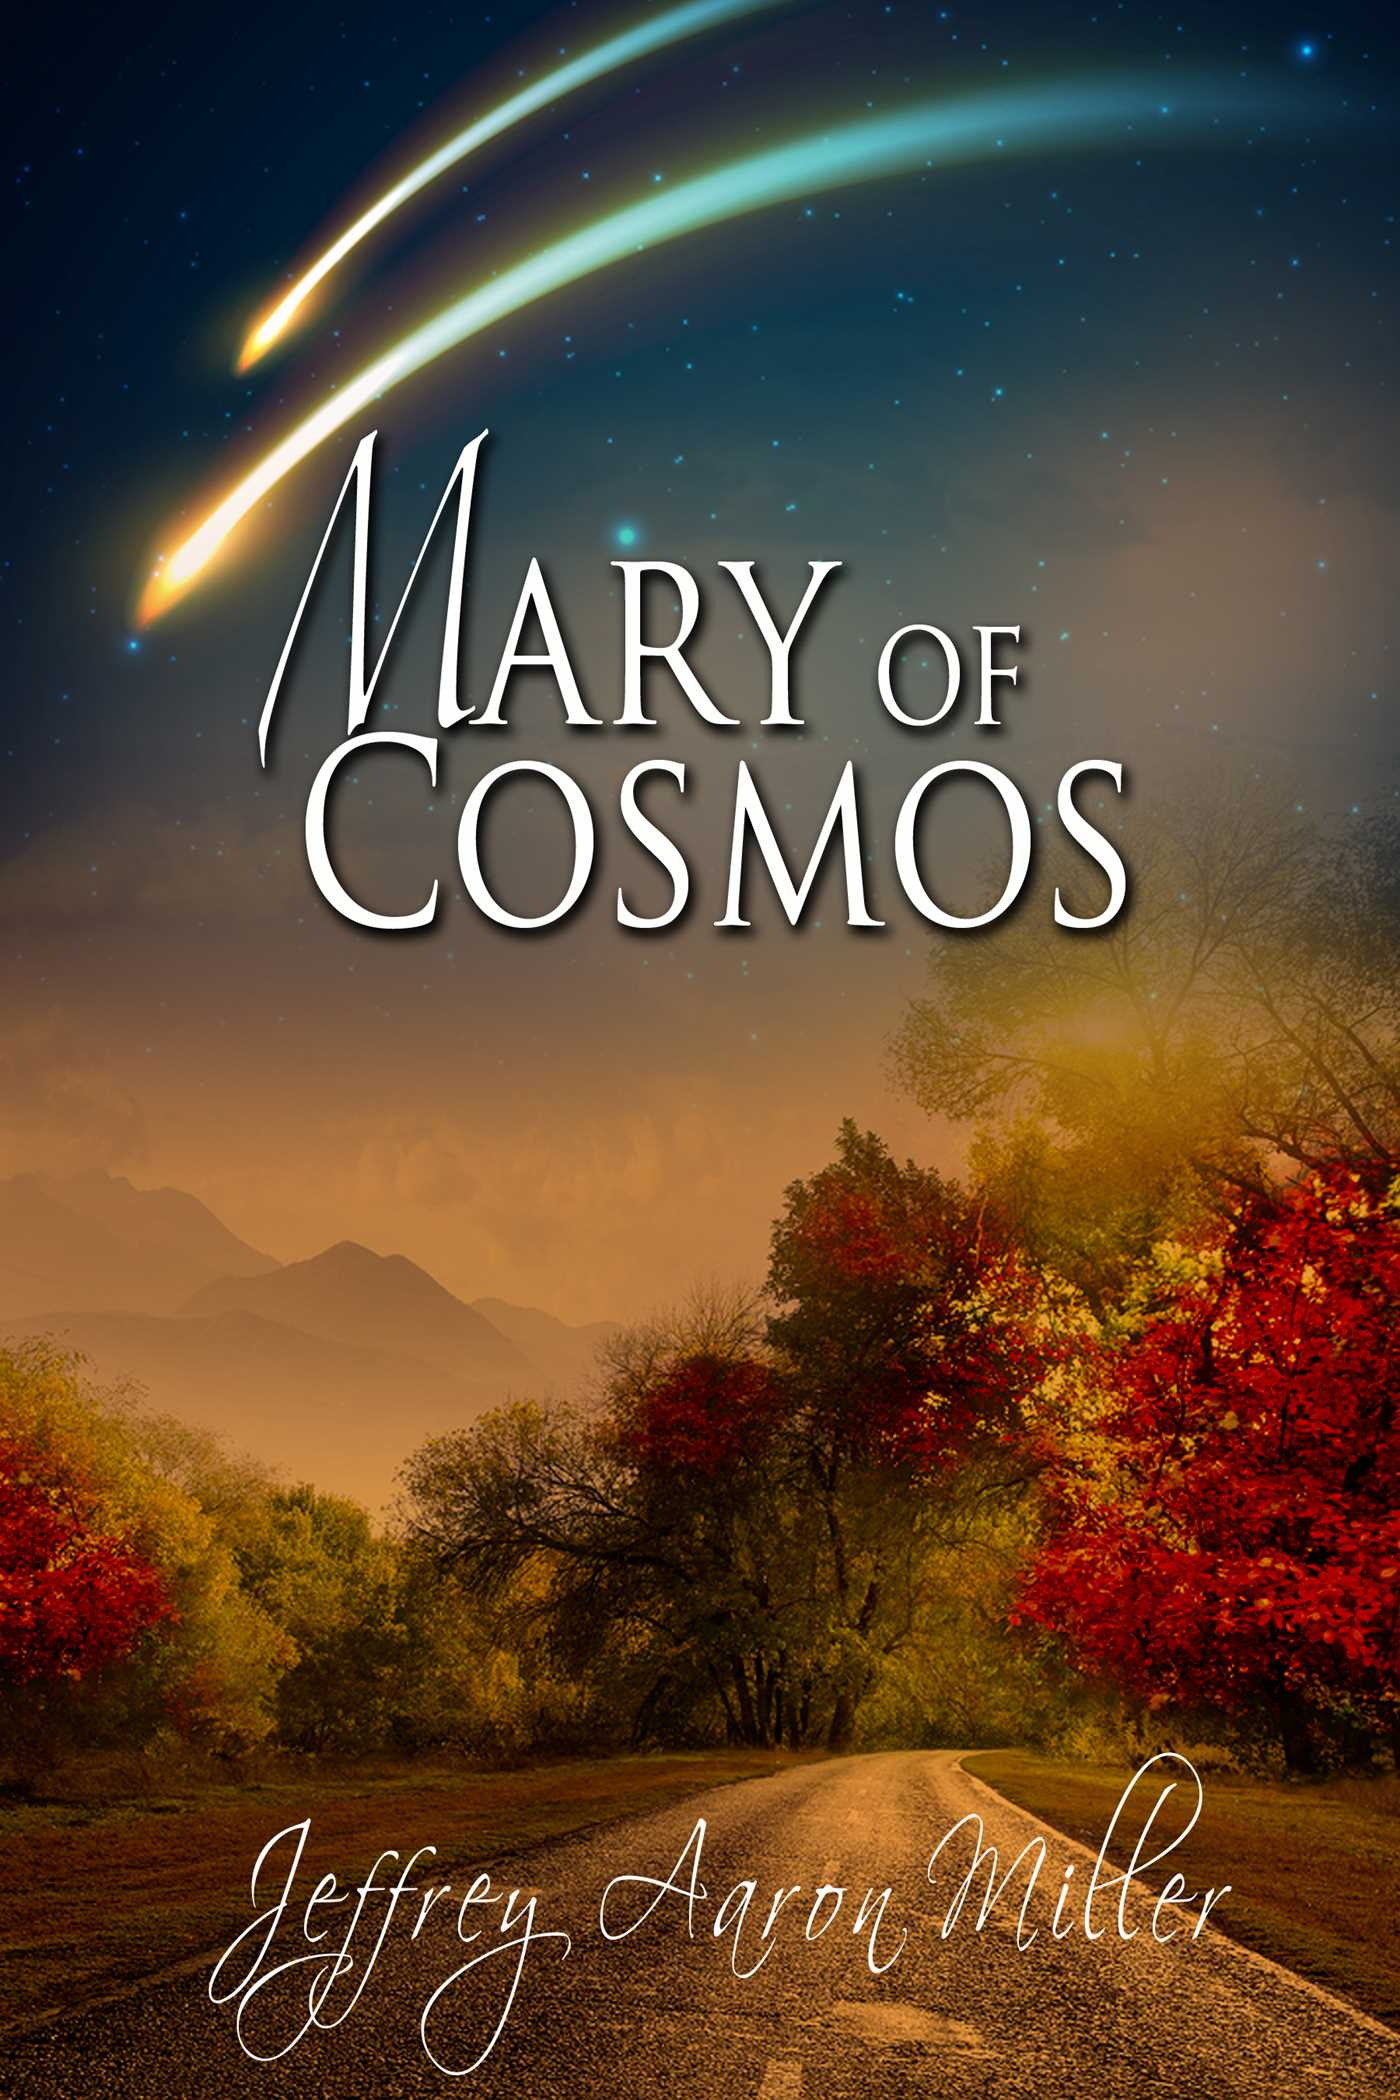 Mary of cosmos 9781611608496 hr